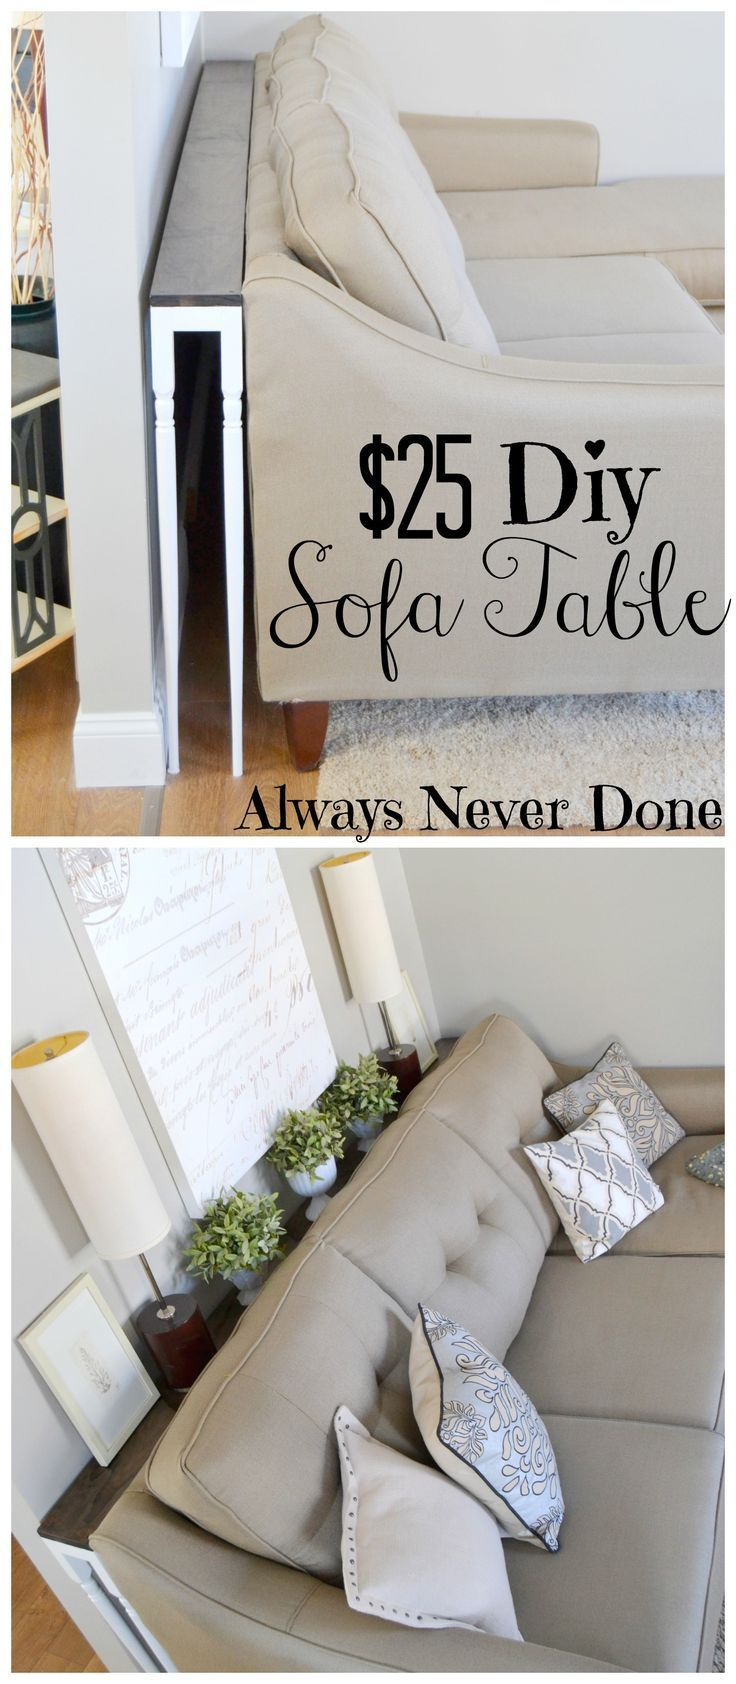 Sofa Table Ideas Pinterest